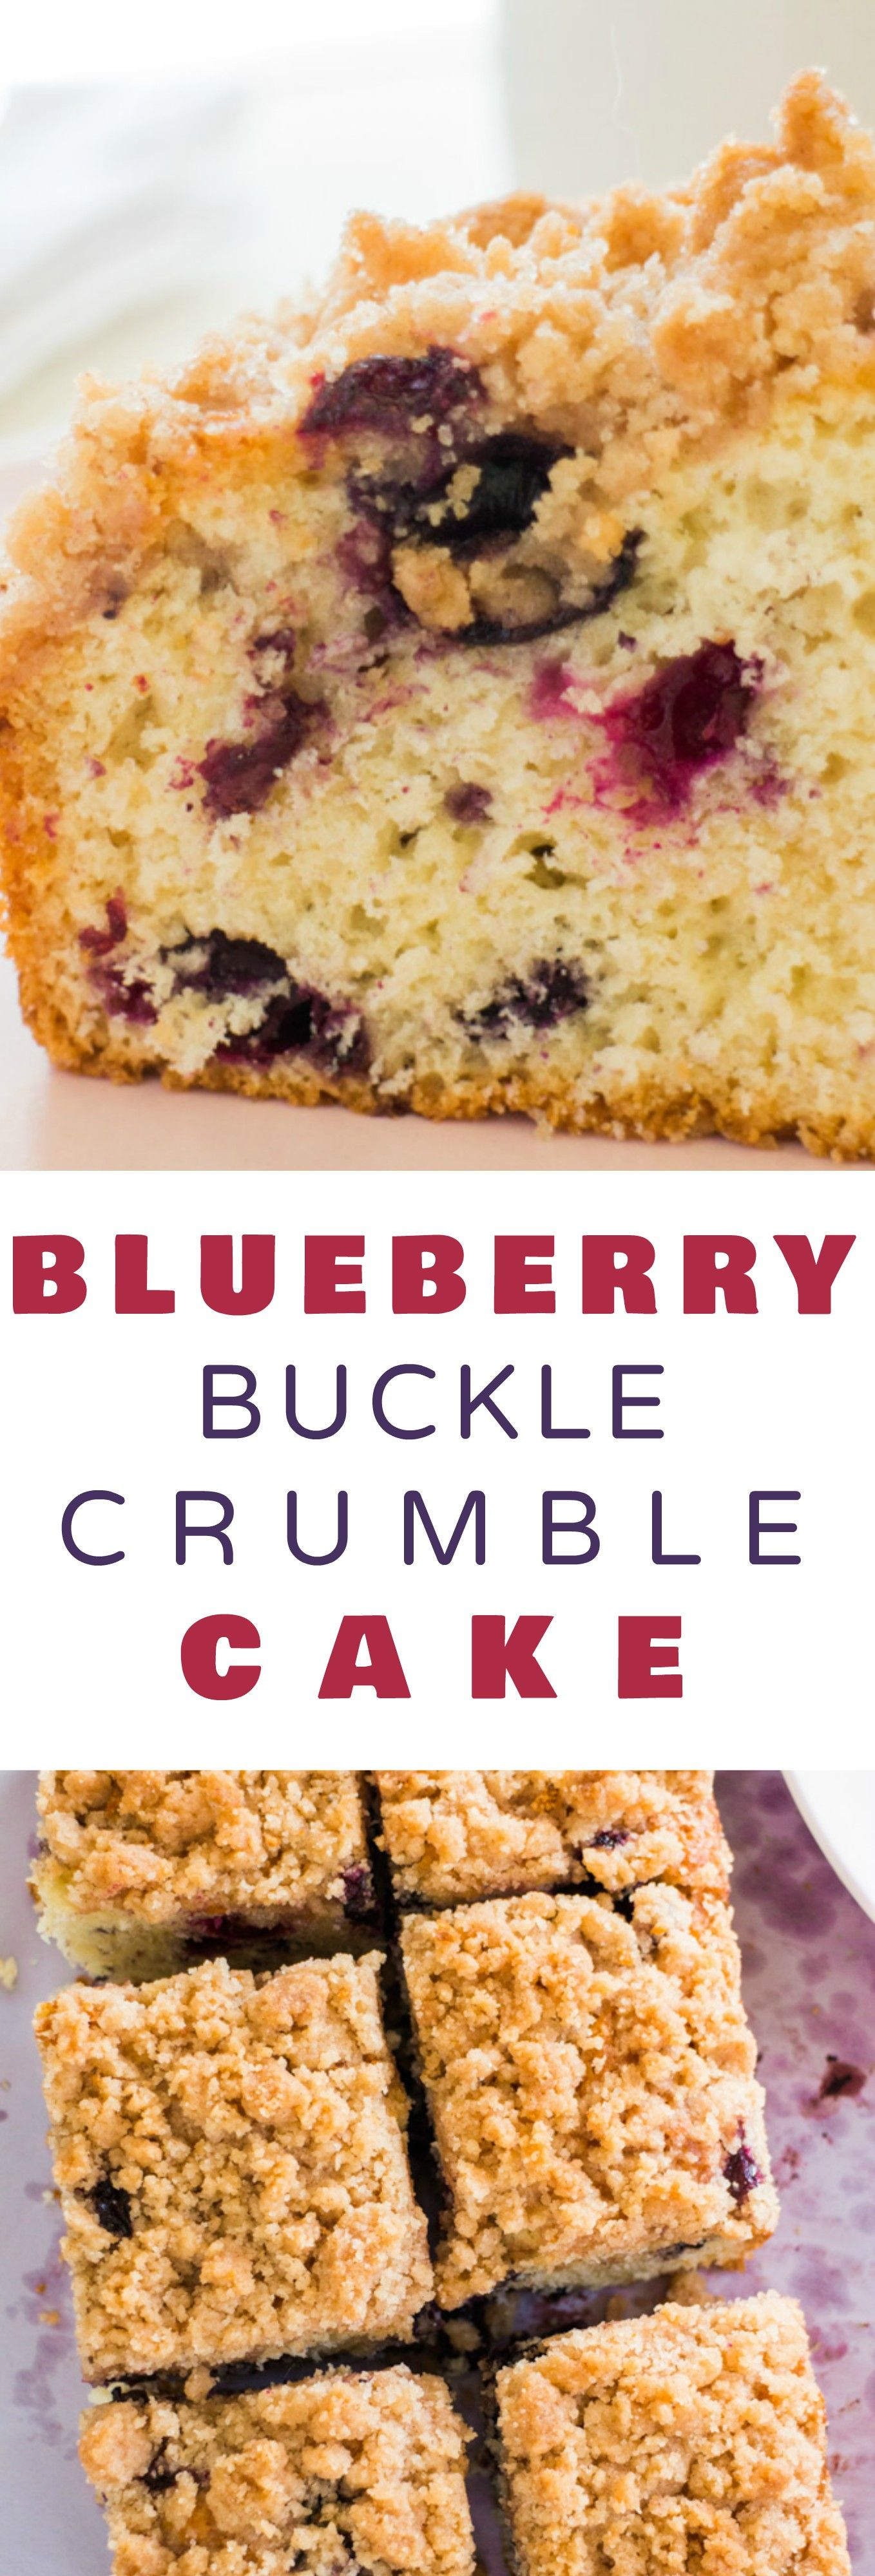 Blueberry Buckle Crumble Cake | Recipe | Moist cakes, Streusel topping and Coffee cake